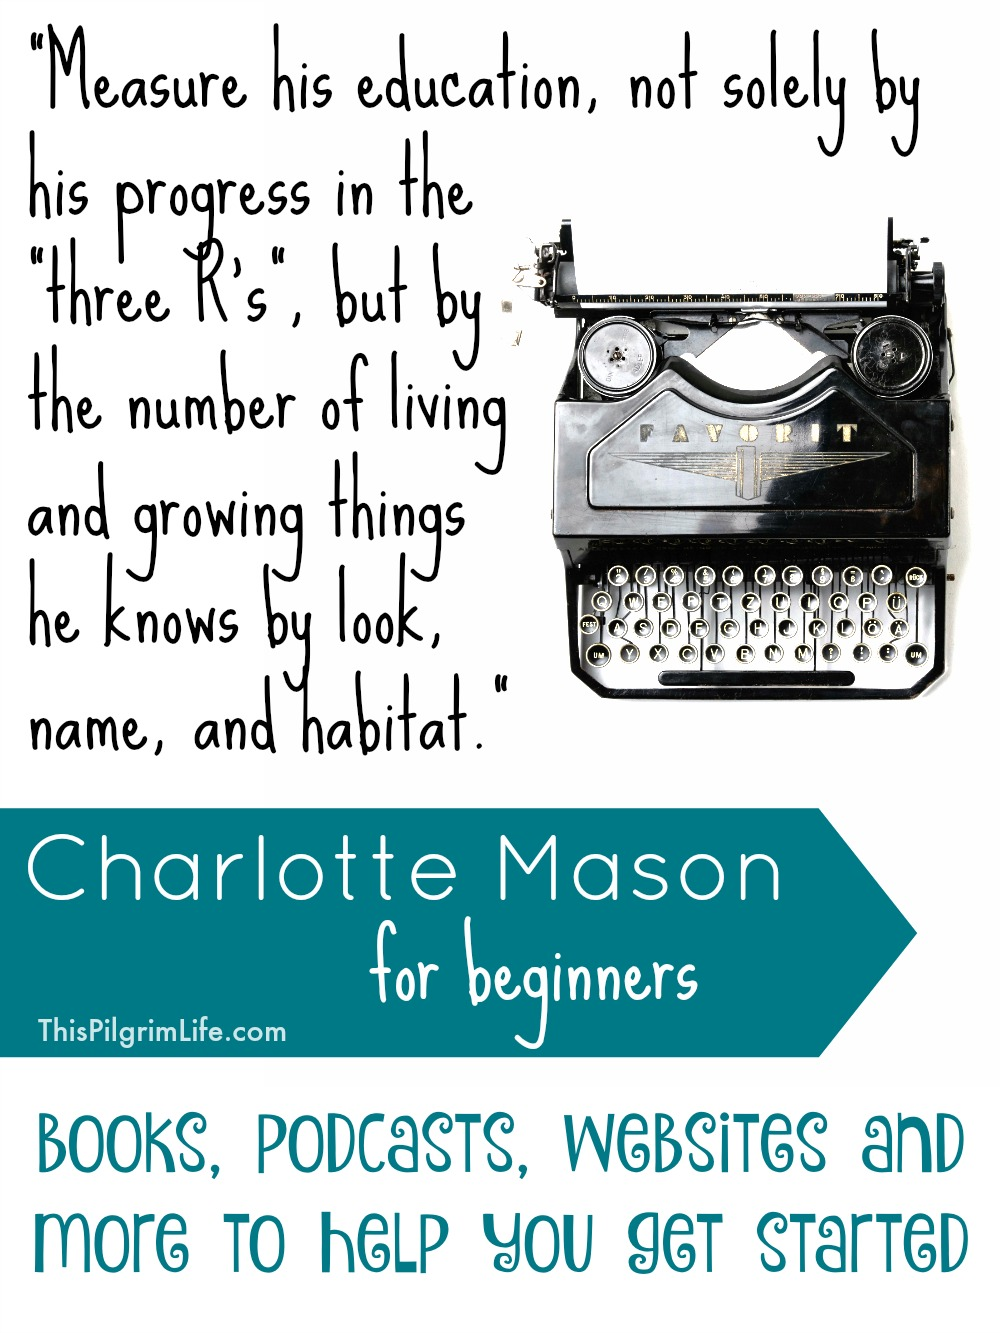 Are you interested in homeschooling using Charlotte Mason's methods and principles? Check out this huge list of resources to help you become acquainted with her ideas and how to implement them in your home!